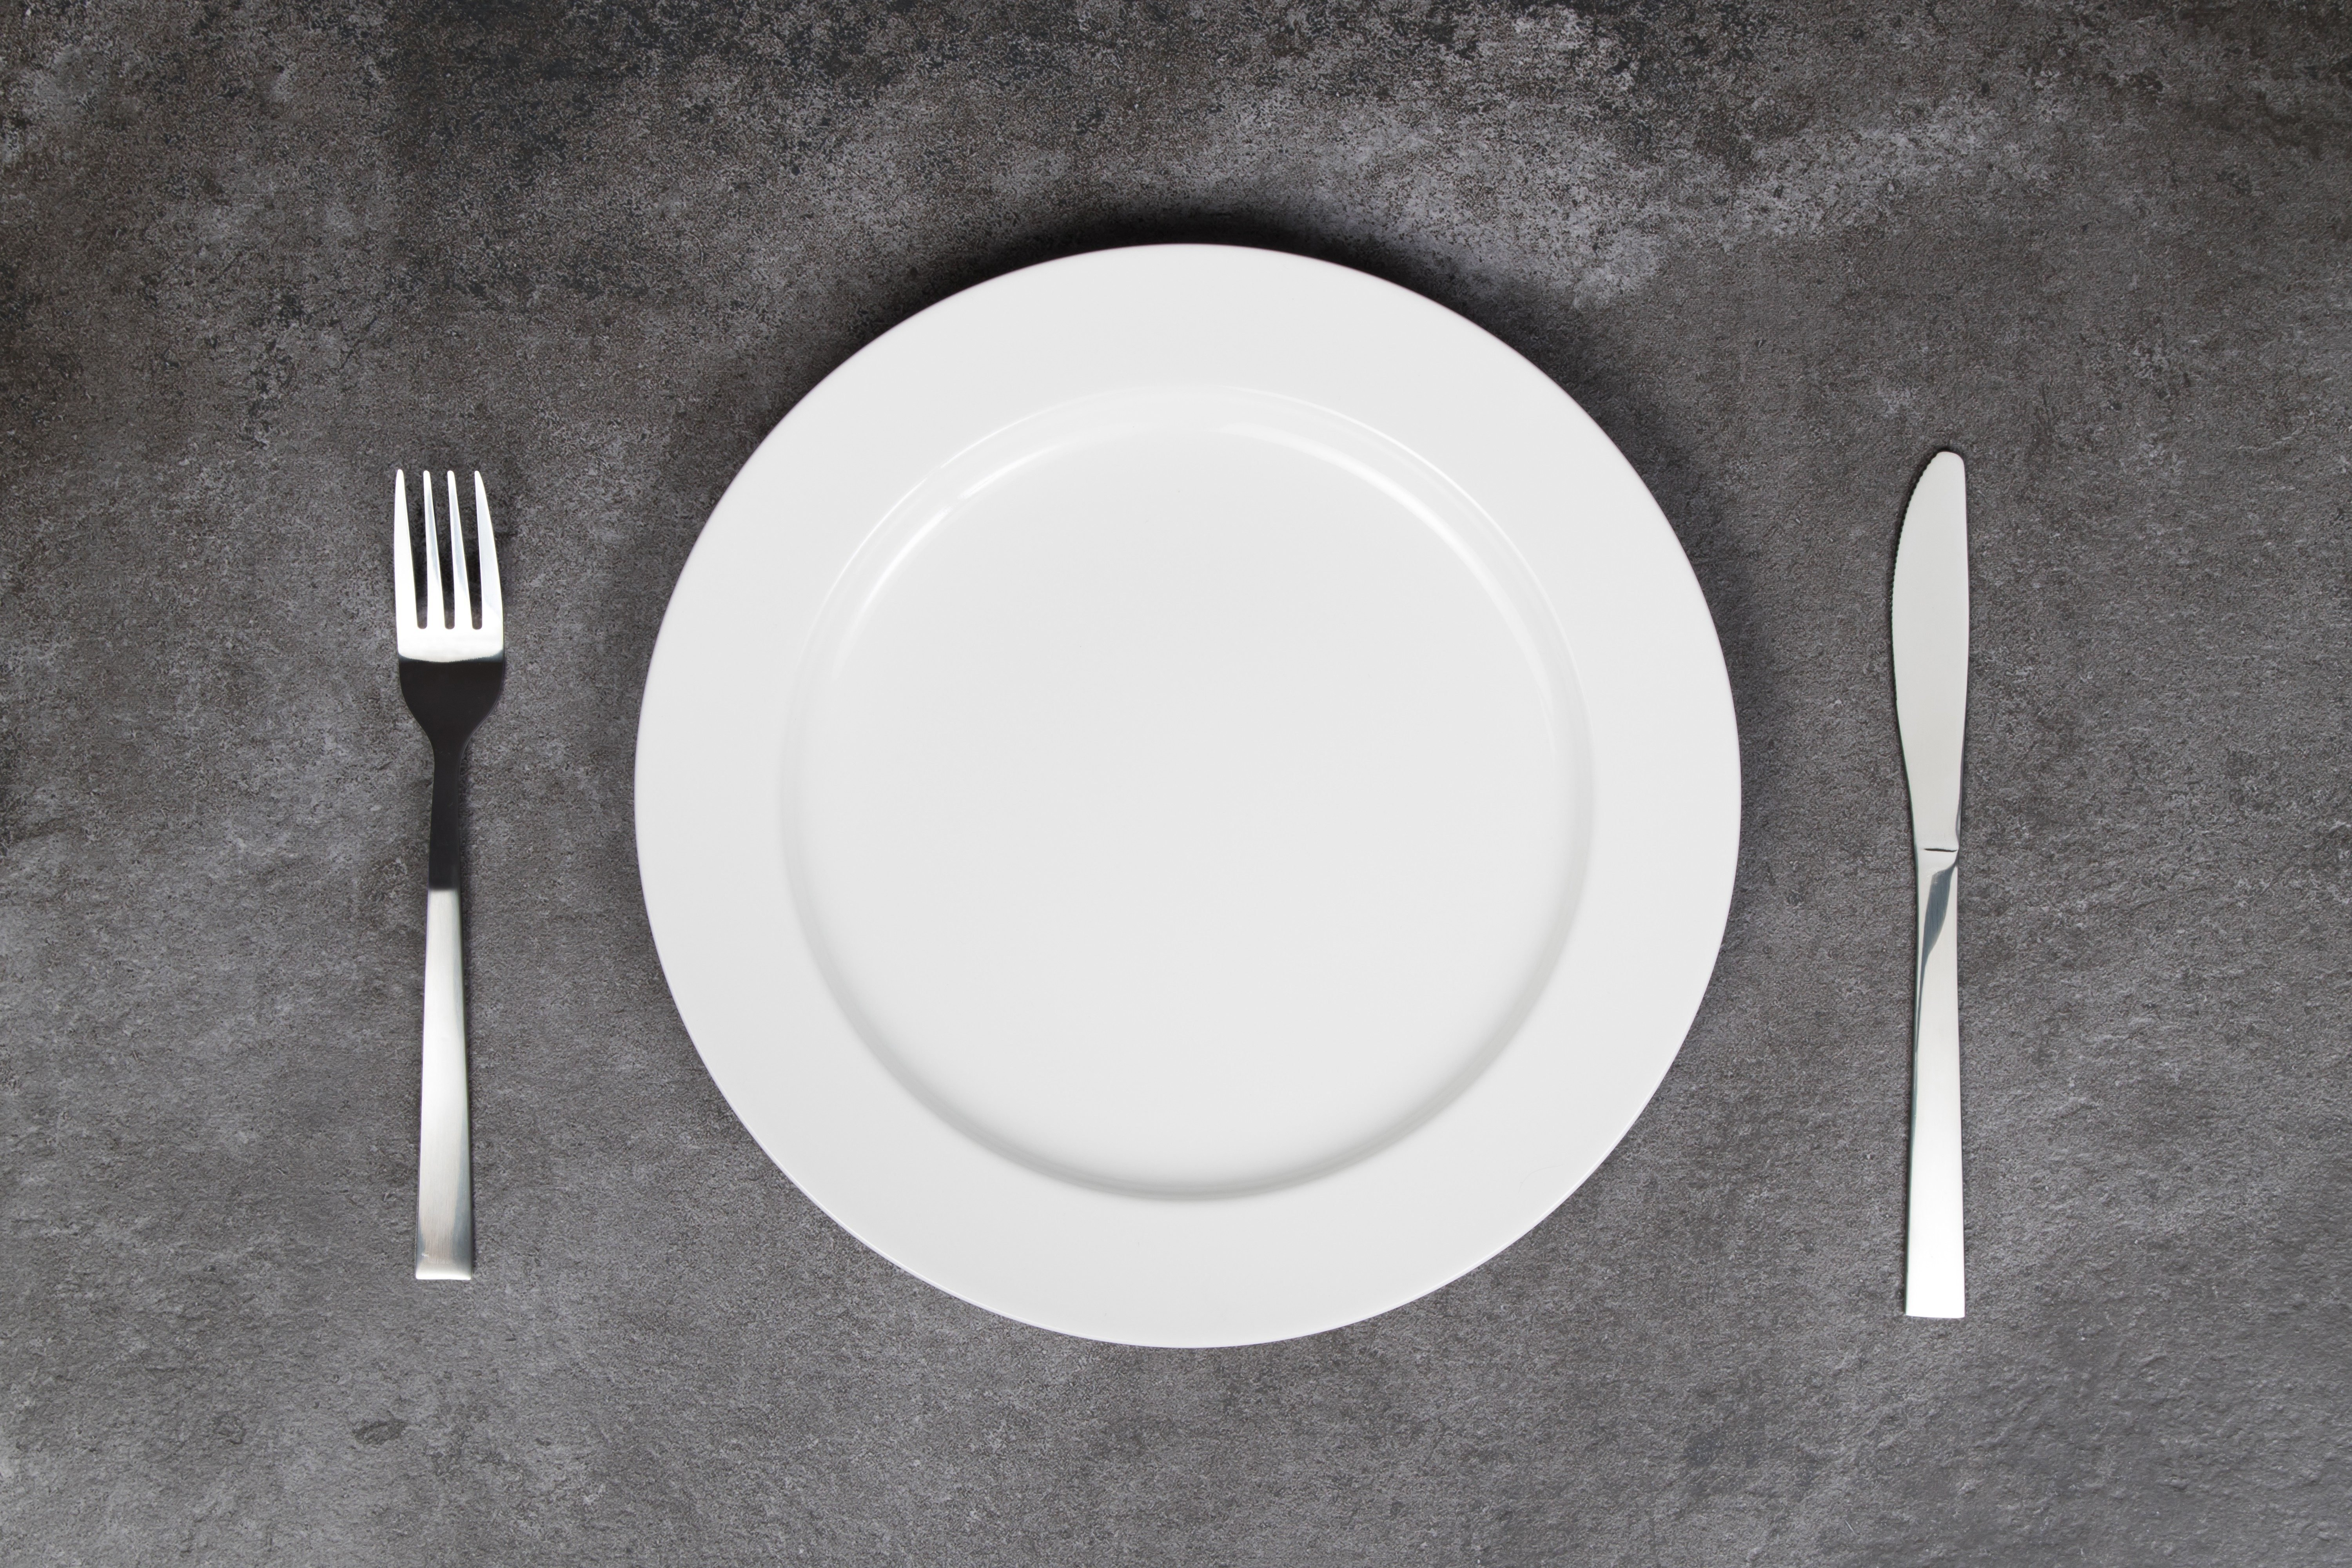 White empty plate with fork and knife on grey background